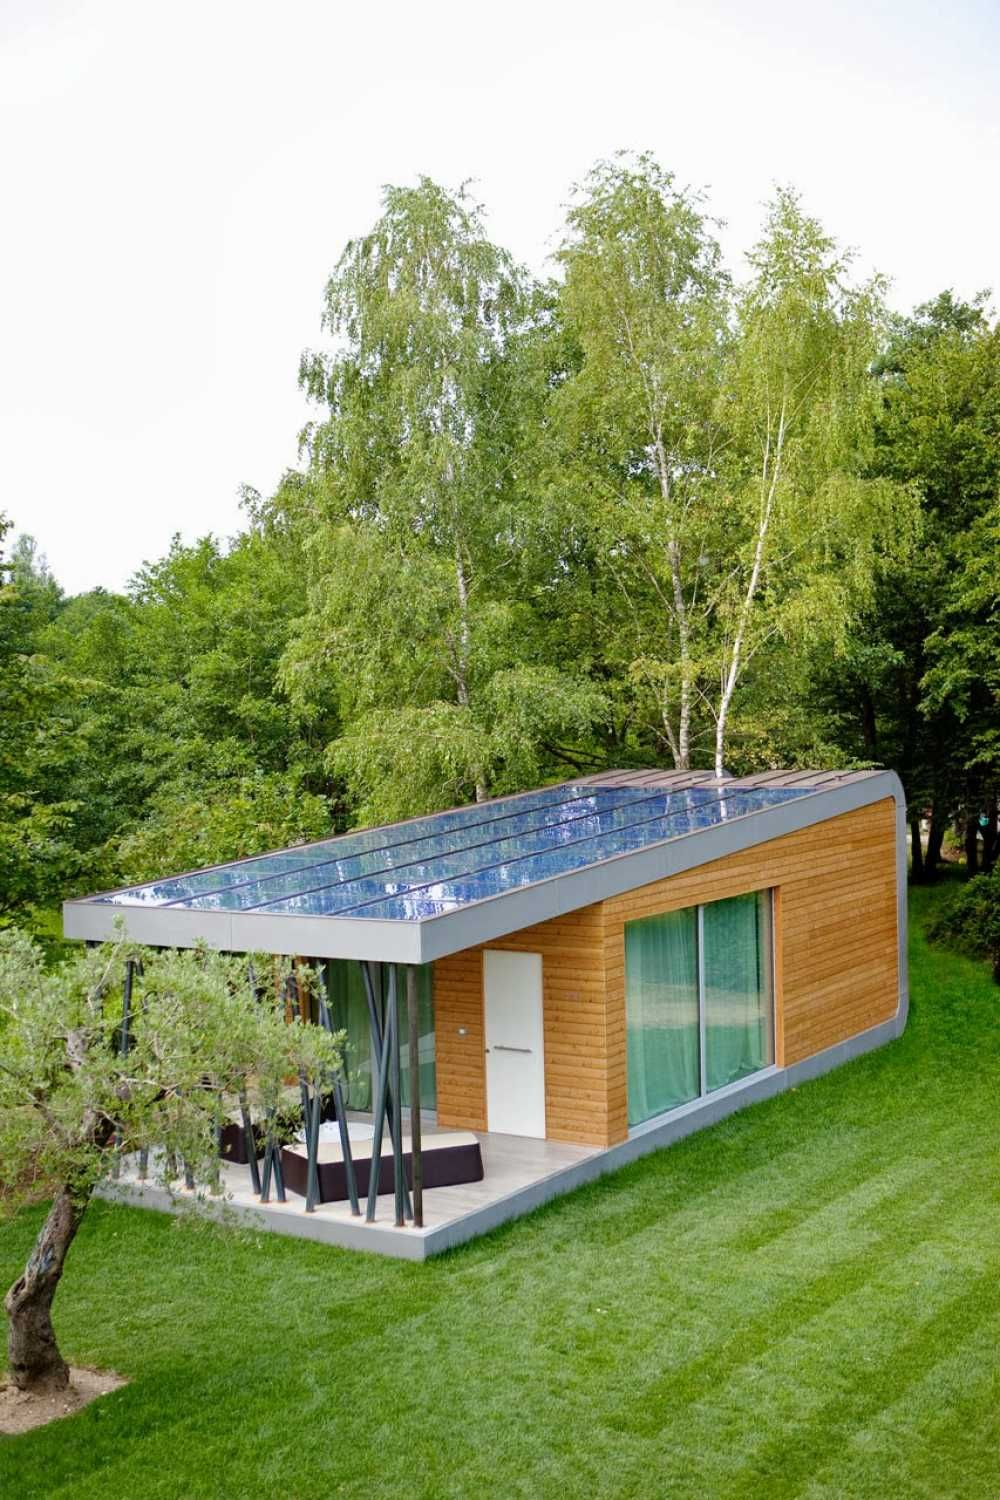 eco friendly house design with solar energy wit large garden ... on tiny house computer, tiny house swimming pool, tiny house awning, tiny house electrical, tiny house led light, tiny house bicycle, tiny house fan, tiny house windows, tiny house windmill, tiny house wind power, tiny house roofing, tiny house refrigerator, tiny house generator, tiny house on grid, tiny house ladder, tiny house water, tiny house dc, tiny house air conditioning, tiny house rainwater collection, tiny house home,